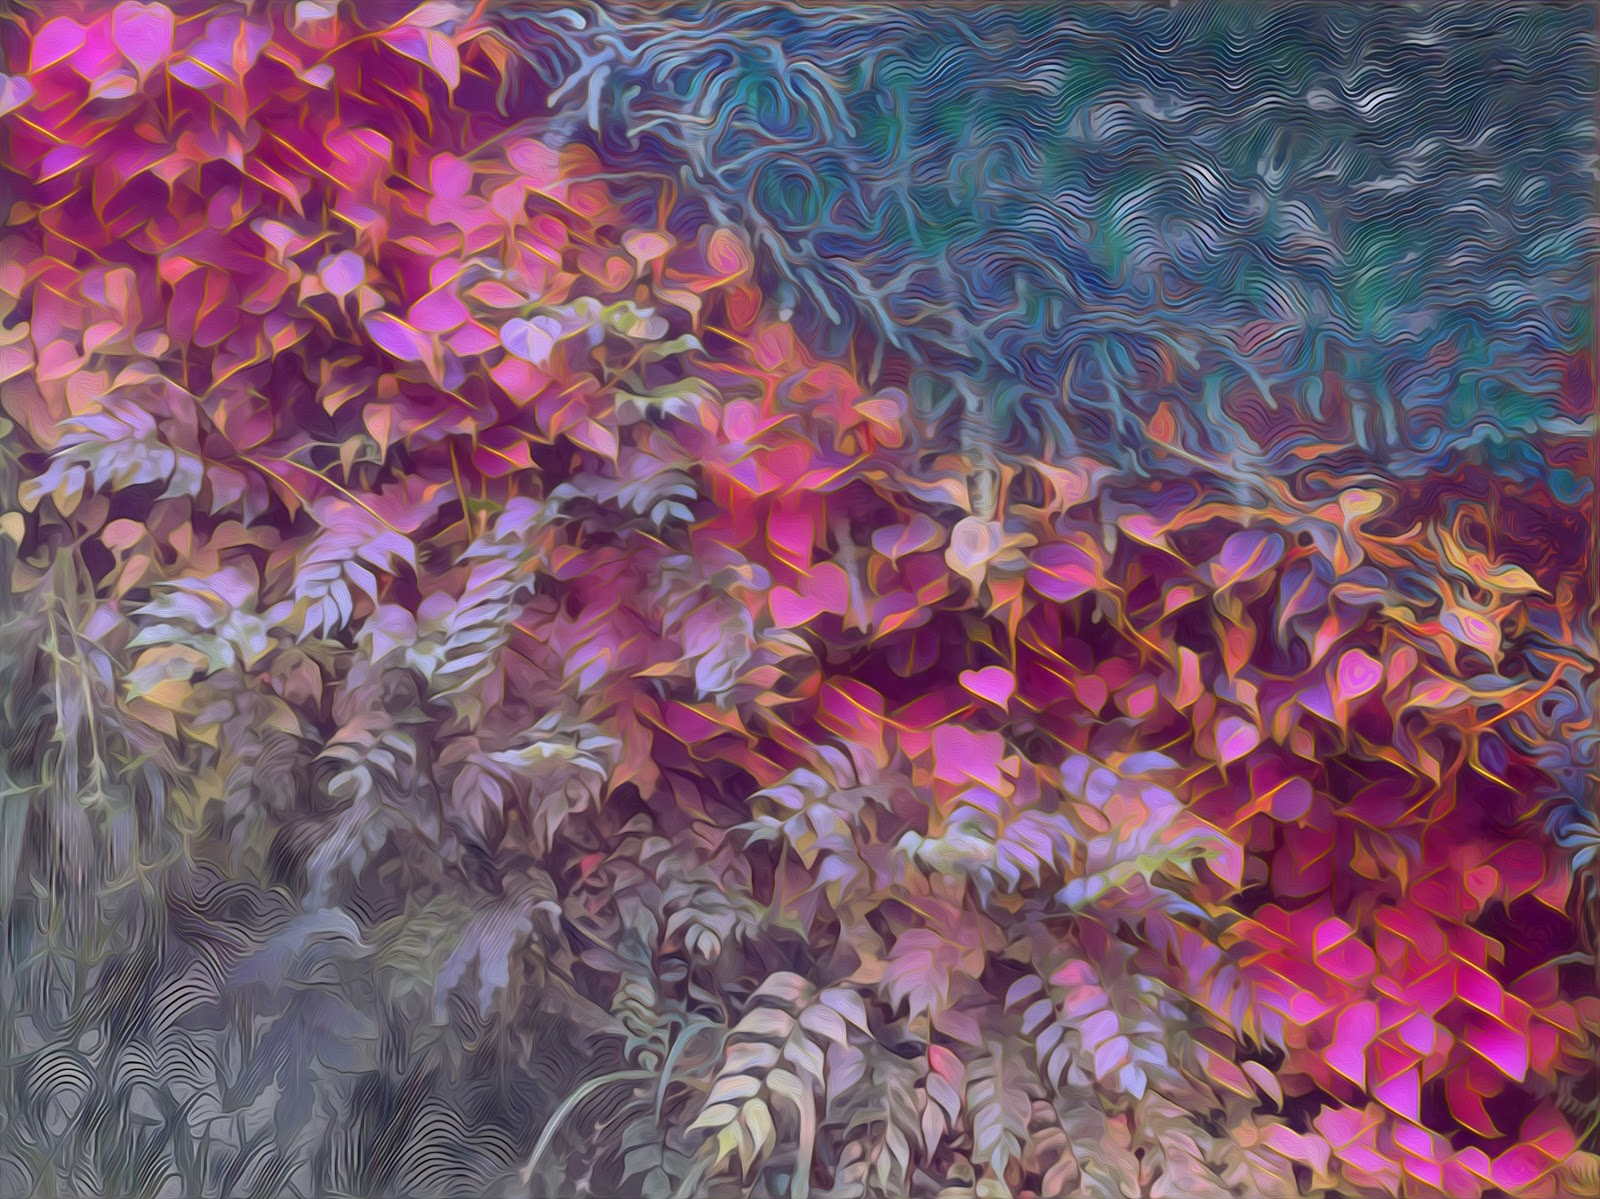 """""""A picture of a wall full of diverse types of plants that I ran through a lot of different styles and blended together. I was trying to create some reflection of the variety of plants in the picture I originally took in the diversity of the aesthetics applied to it."""""""